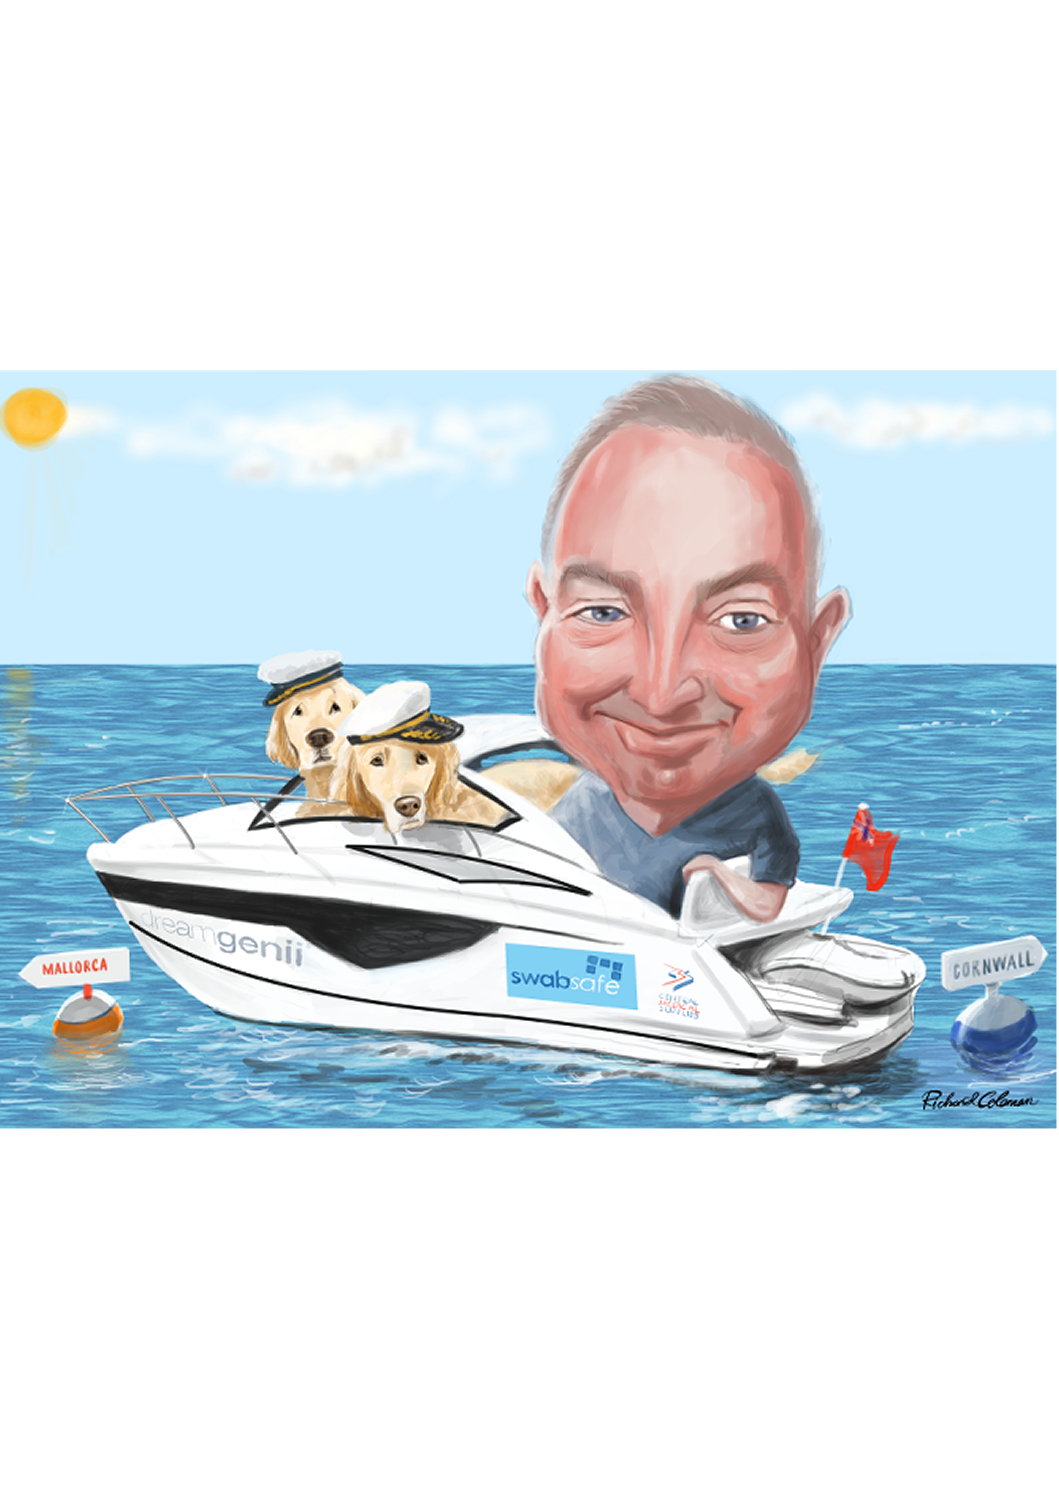 man in motor boat at sea with two dogs.